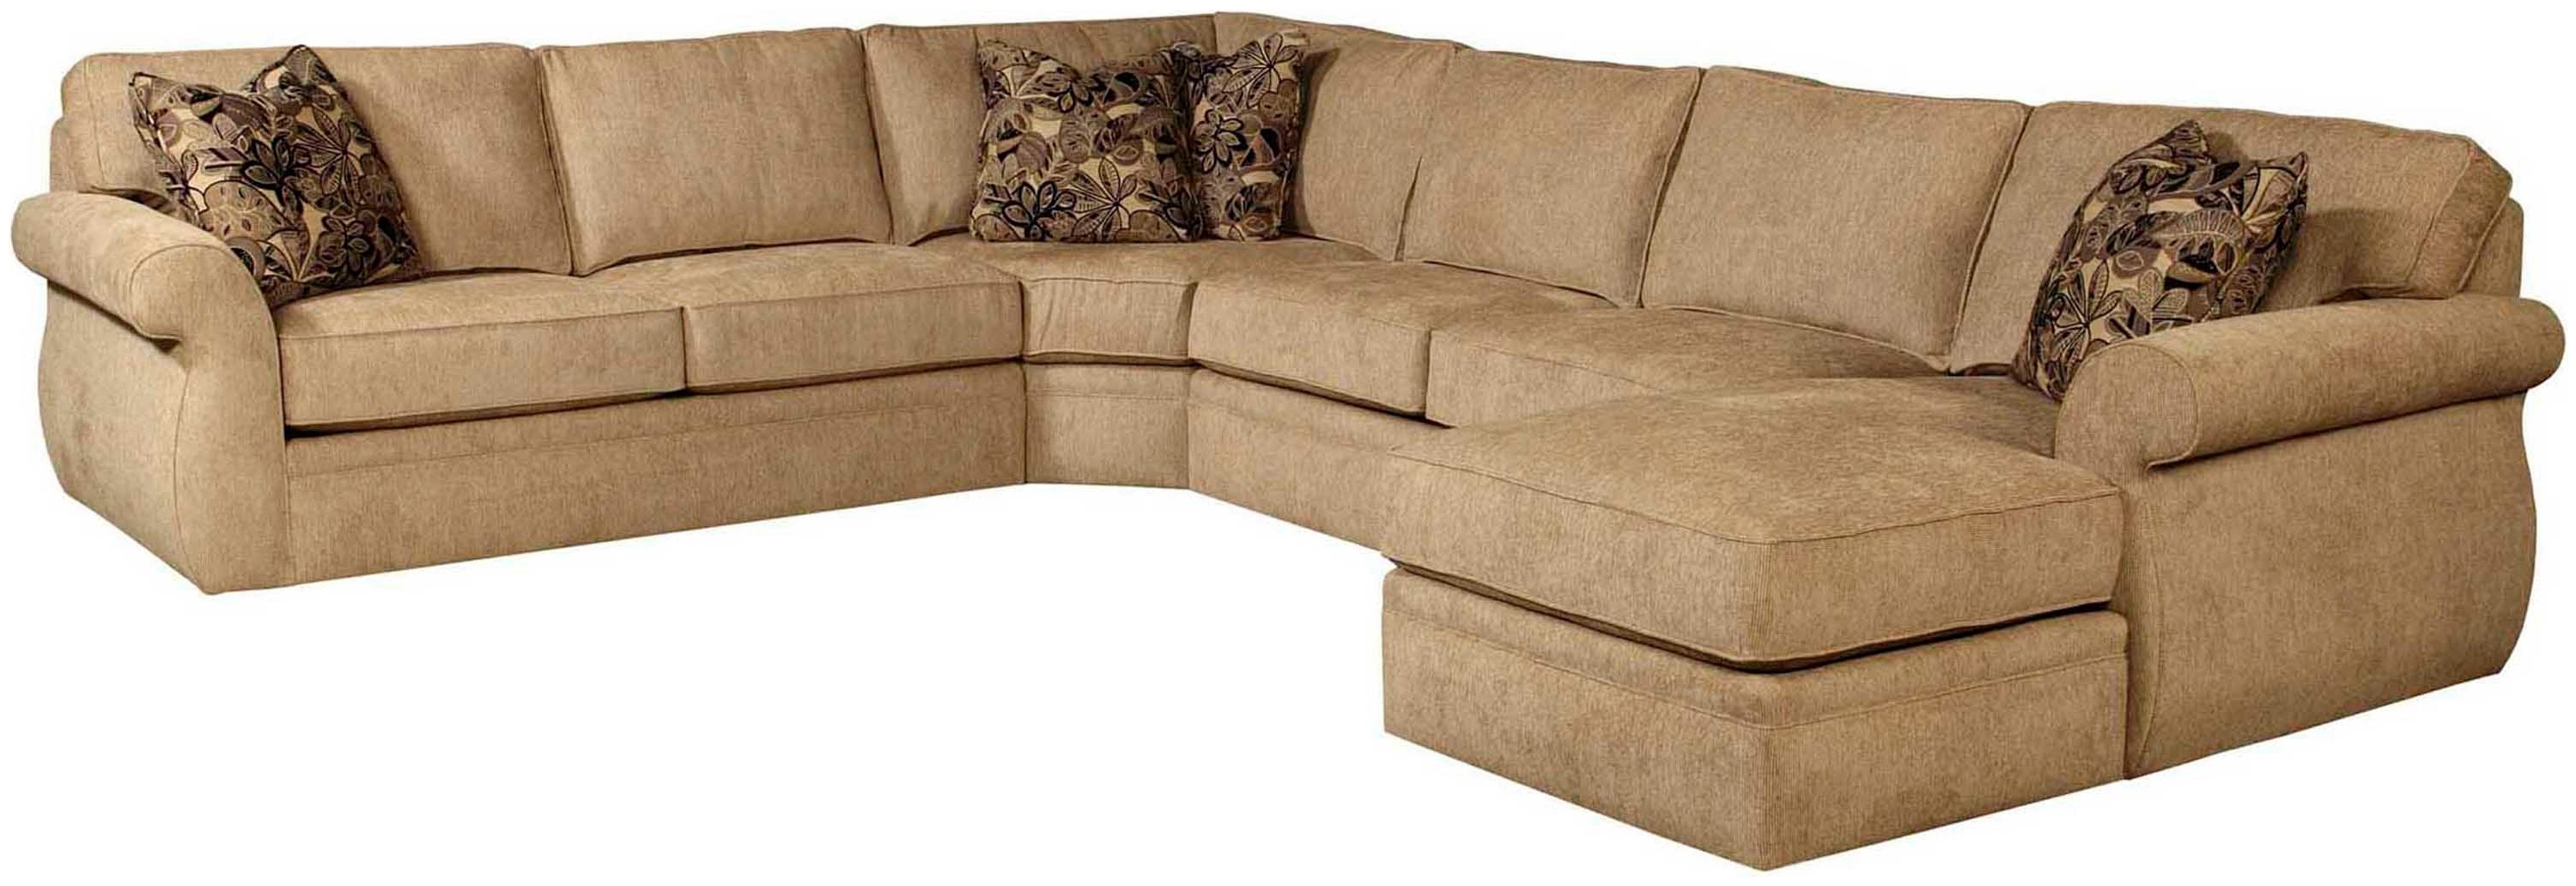 Most Recent Sectional Sofas At Broyhill Intended For Broyhill Veronica 4Pc Chaise Sectional (View 9 of 20)